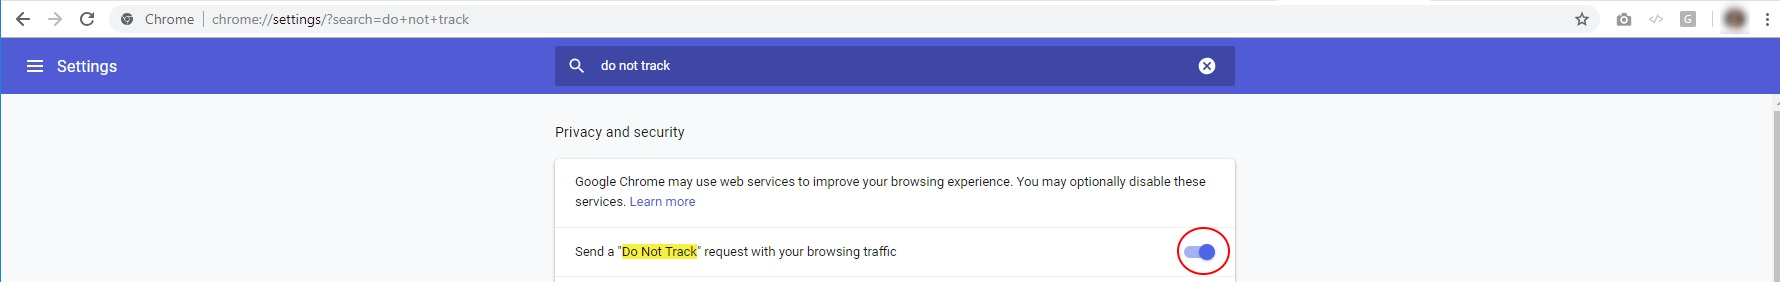 Chrome browser setting Do Not Track